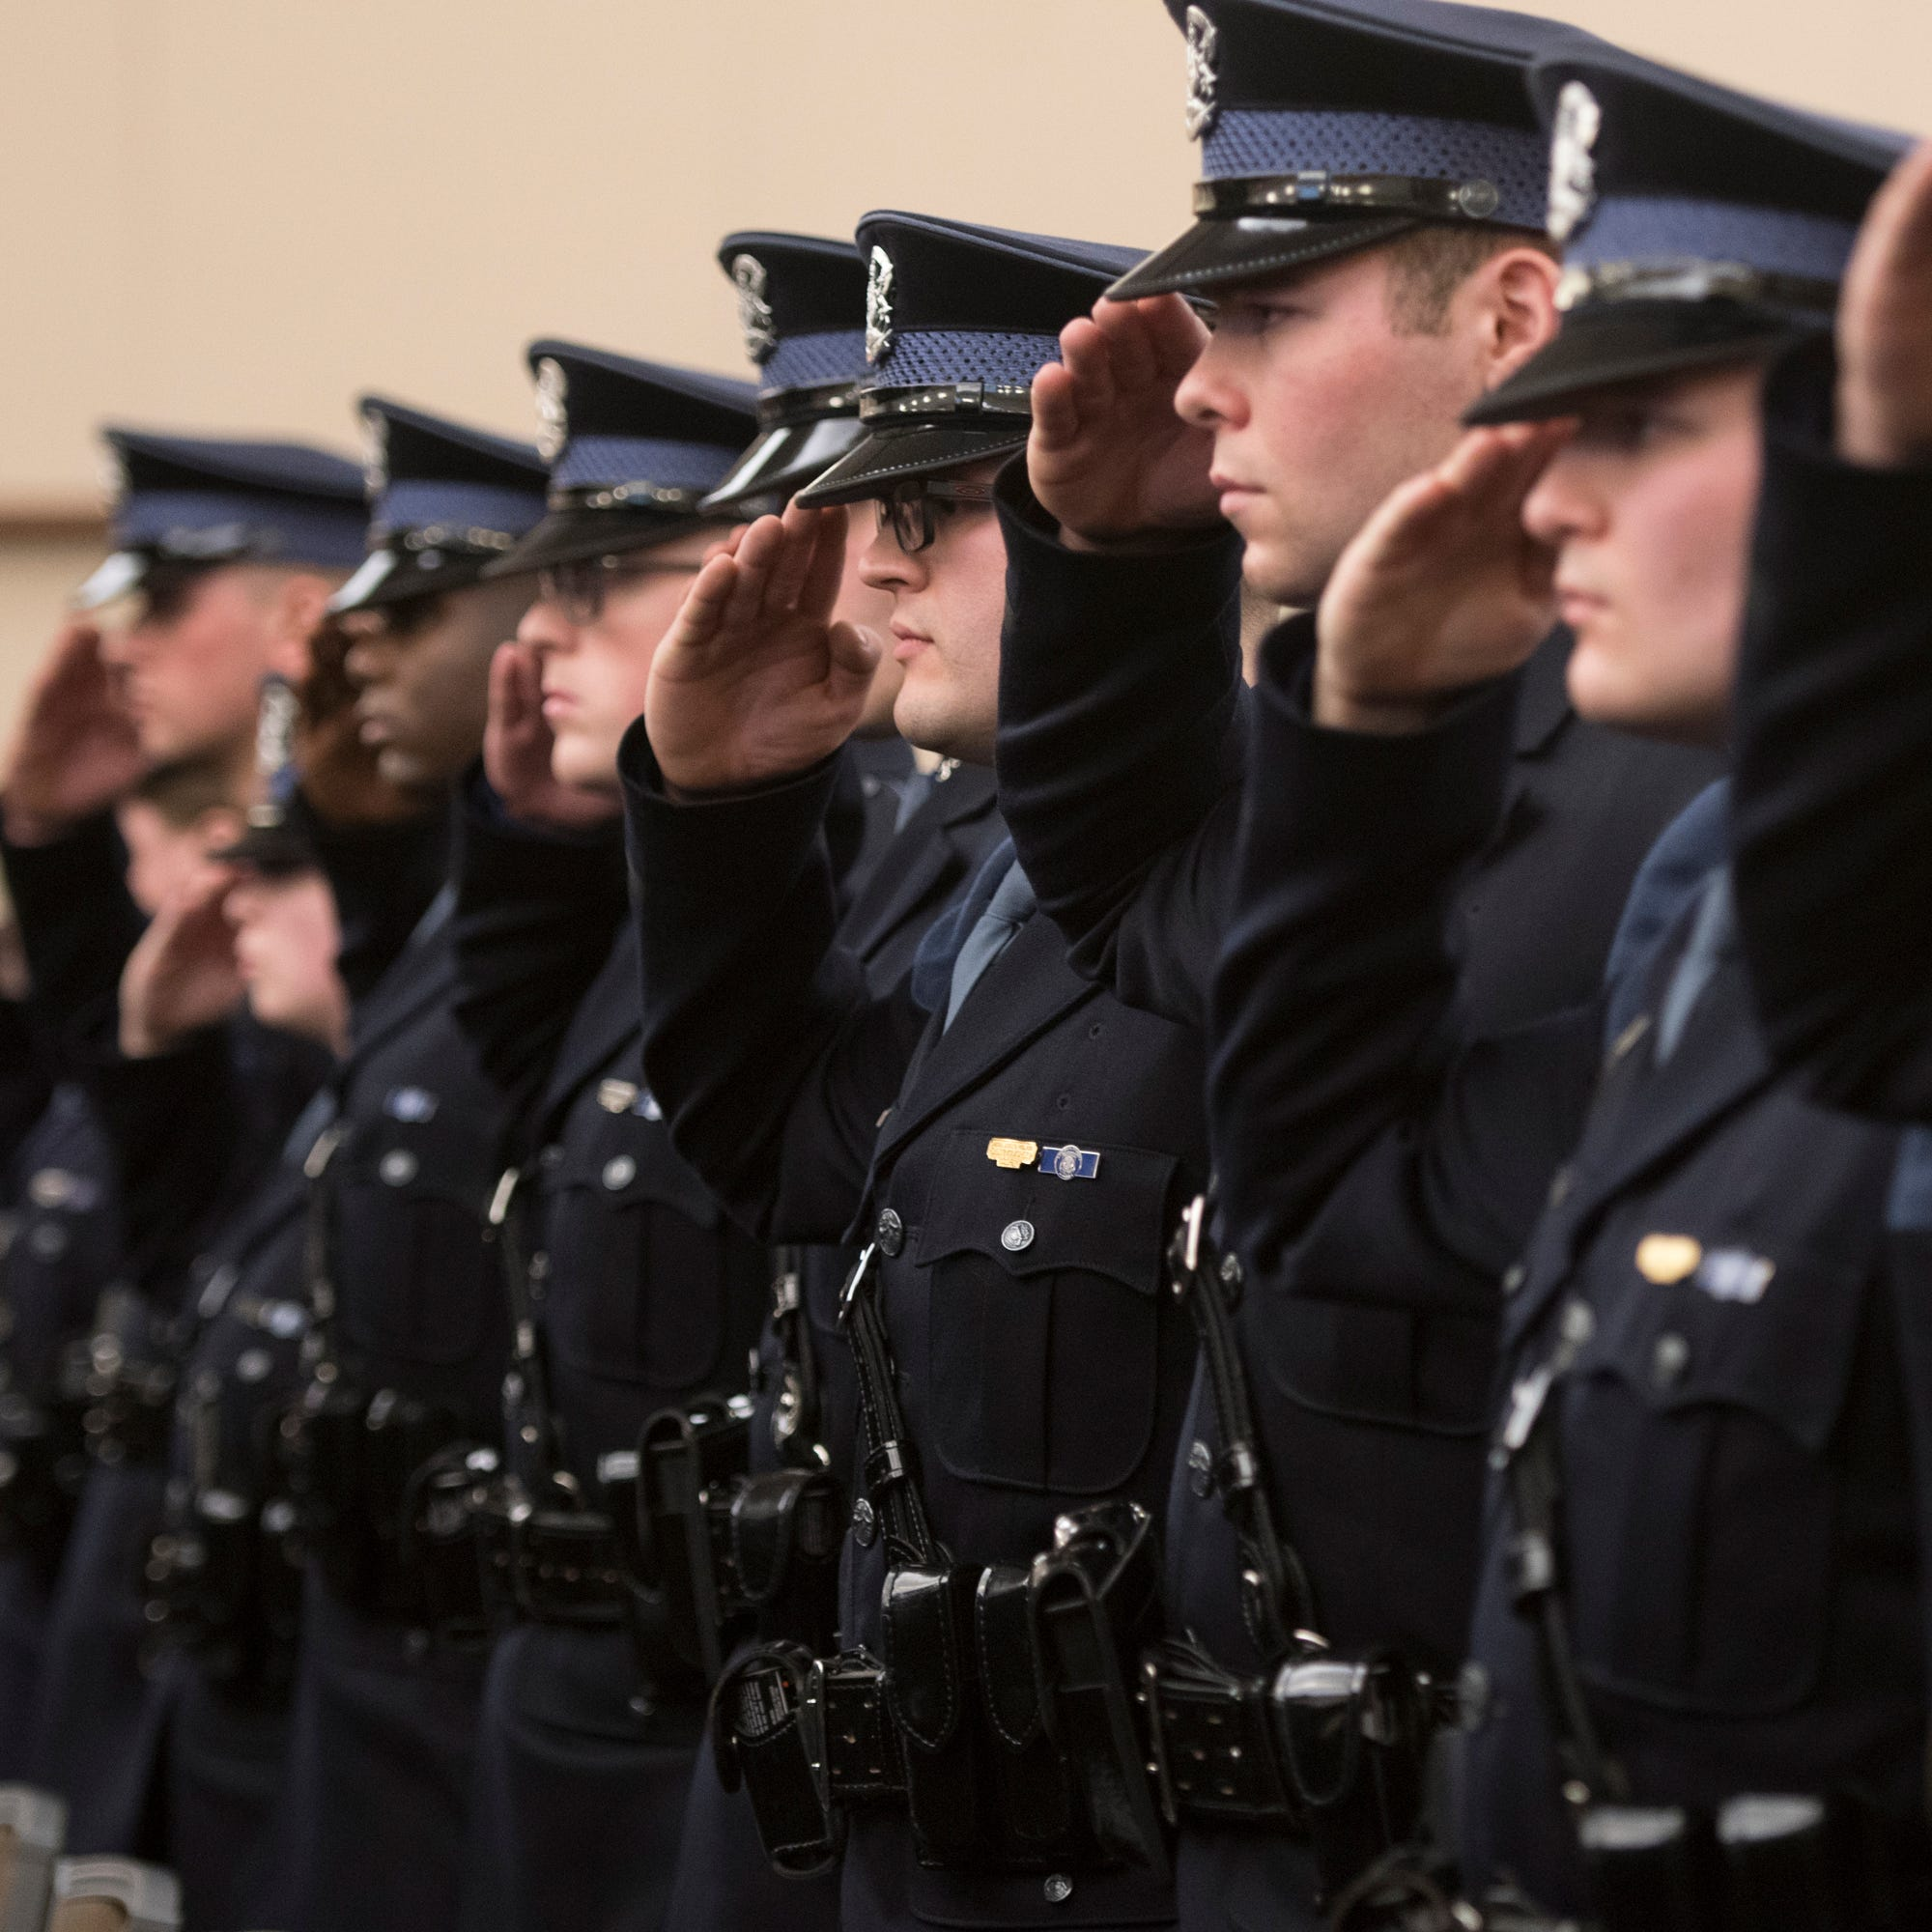 As police officer recruitment faces 'looming crisis,' departments turn to teenagers